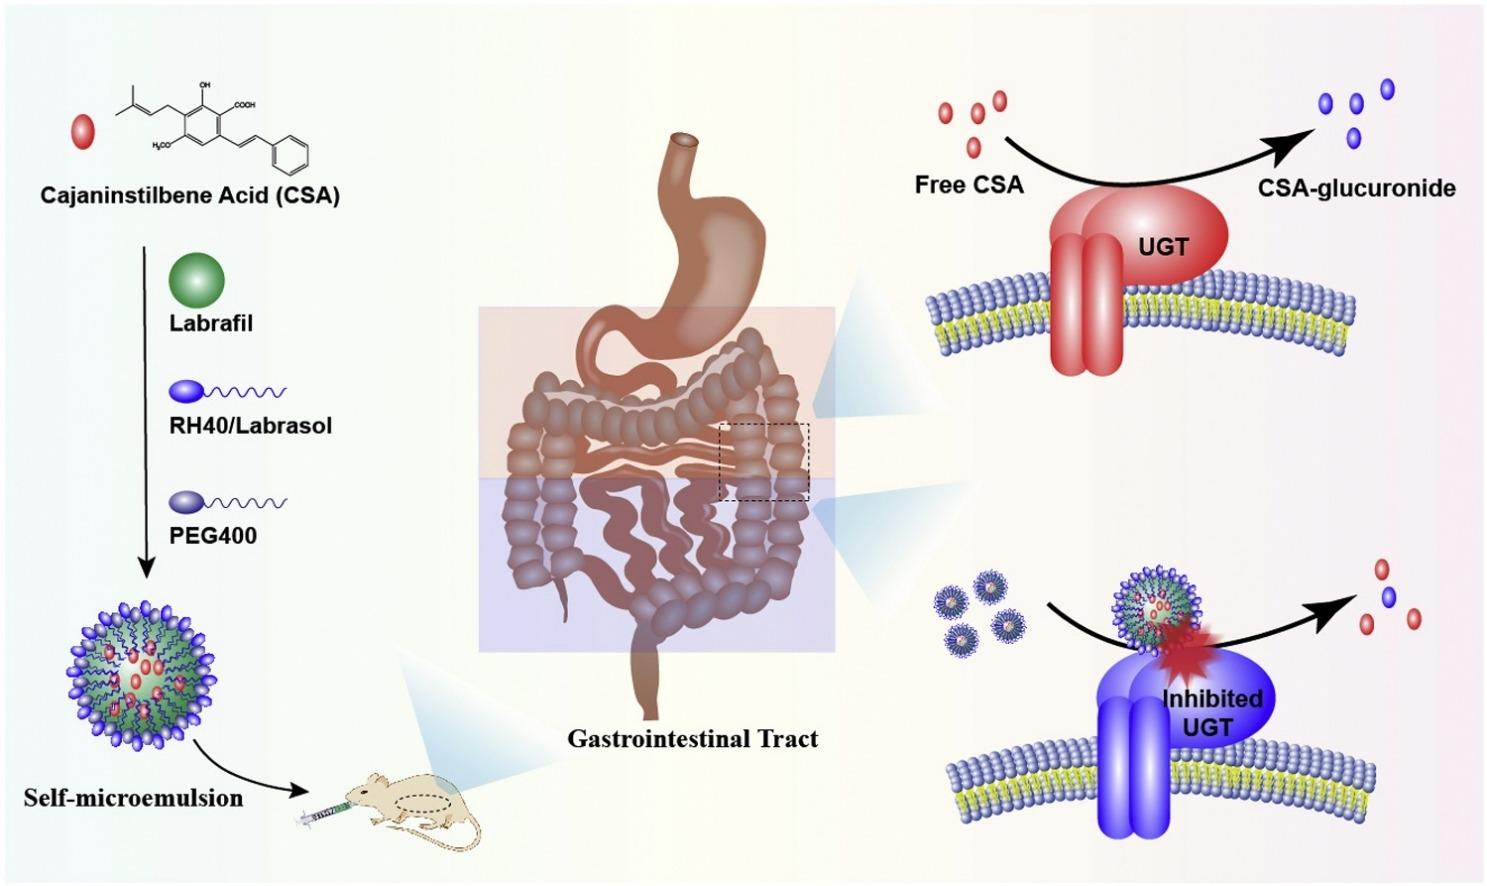 Enhancing in vivo oral bioavailability of cajaninstilbene acid using  UDP-glucuronosyl transferase inhibitory excipient containing  self-microemulsion | Pharma Excipients